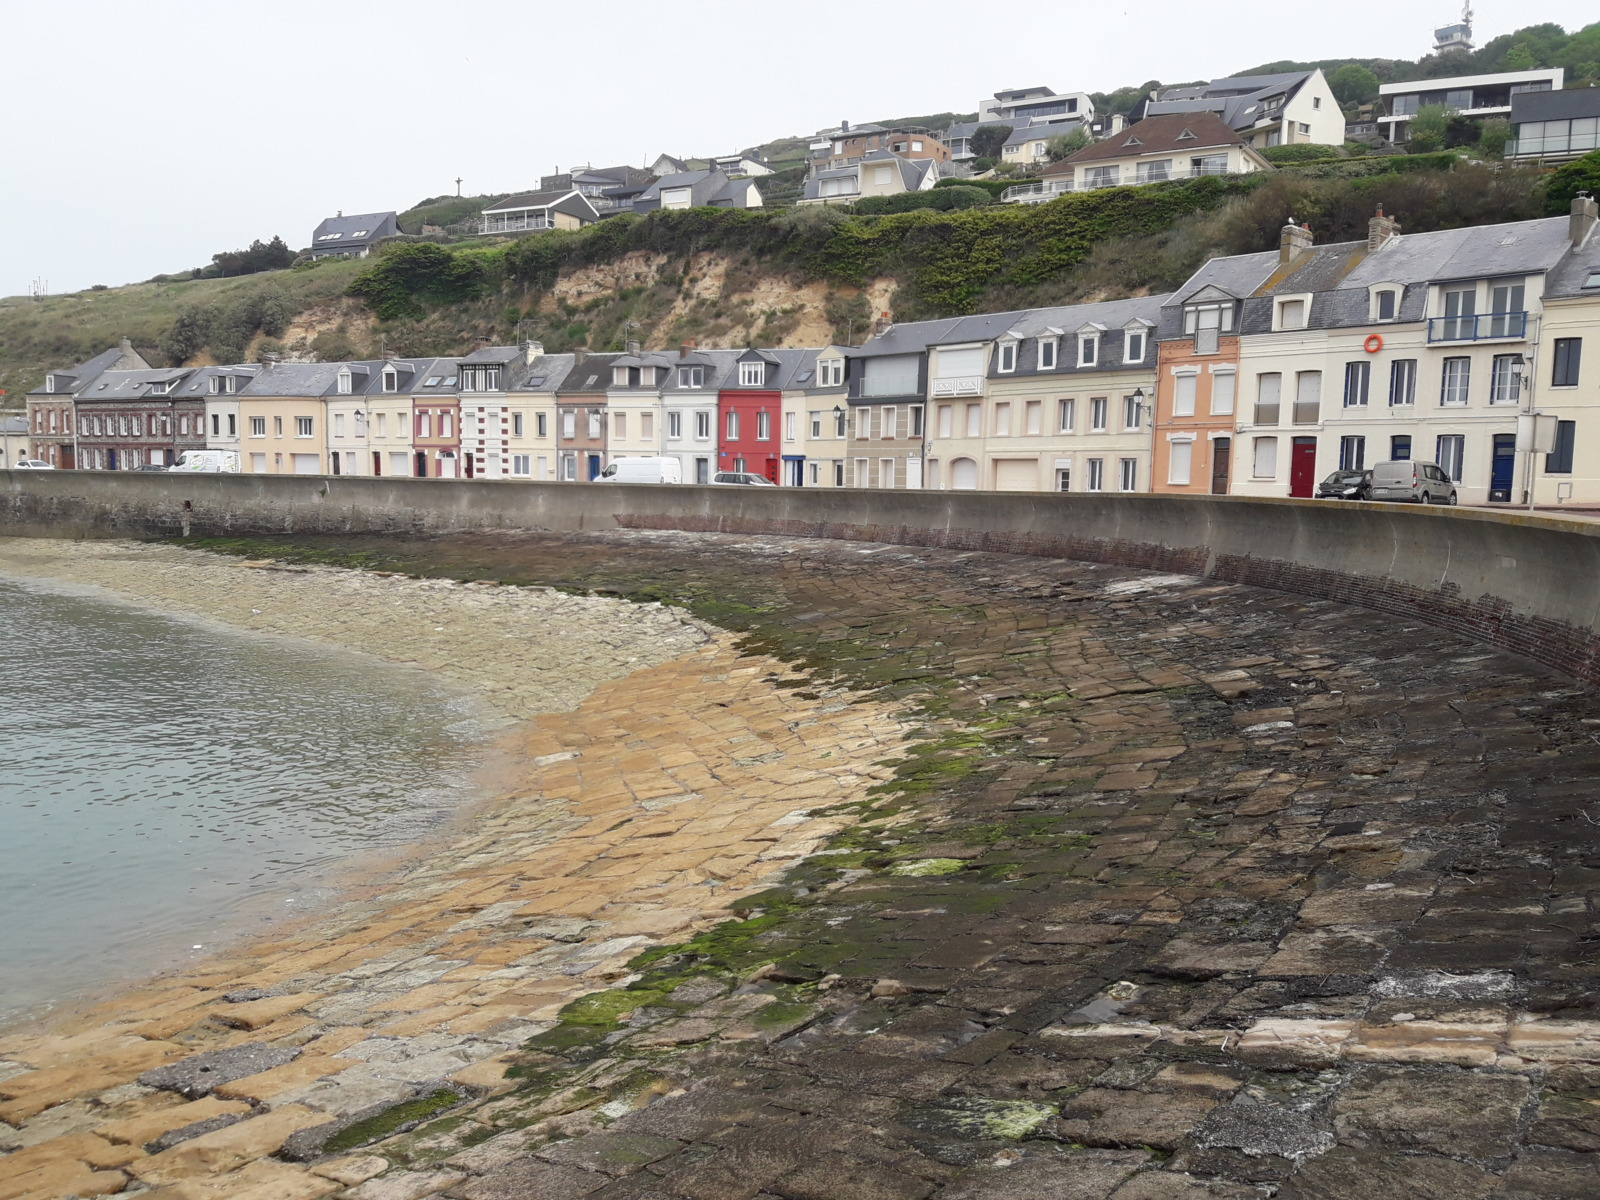 Cottages and beach